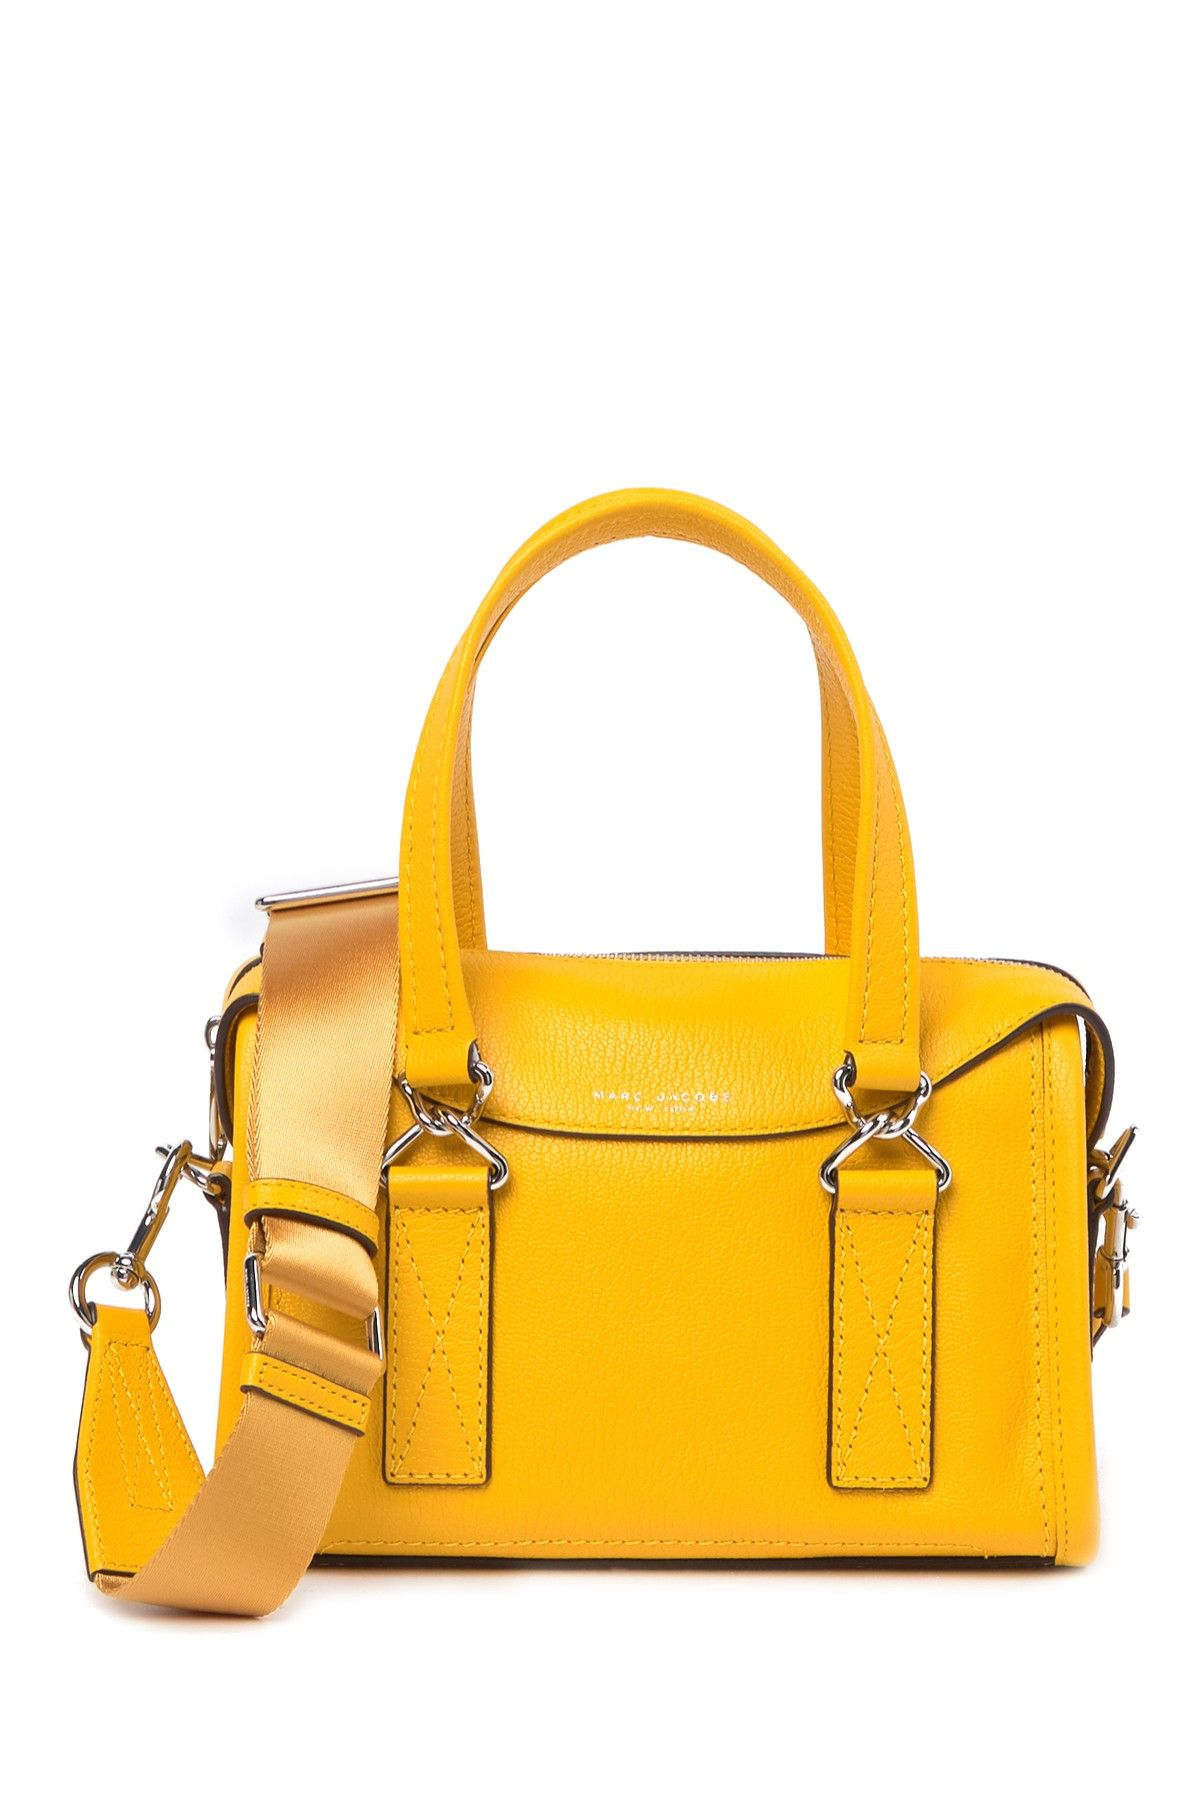 9321d6b80ea6 Marc Jacobs - Wellington Mini Leather Satchel is now 50% off. Free Shipping  on orders over  100.